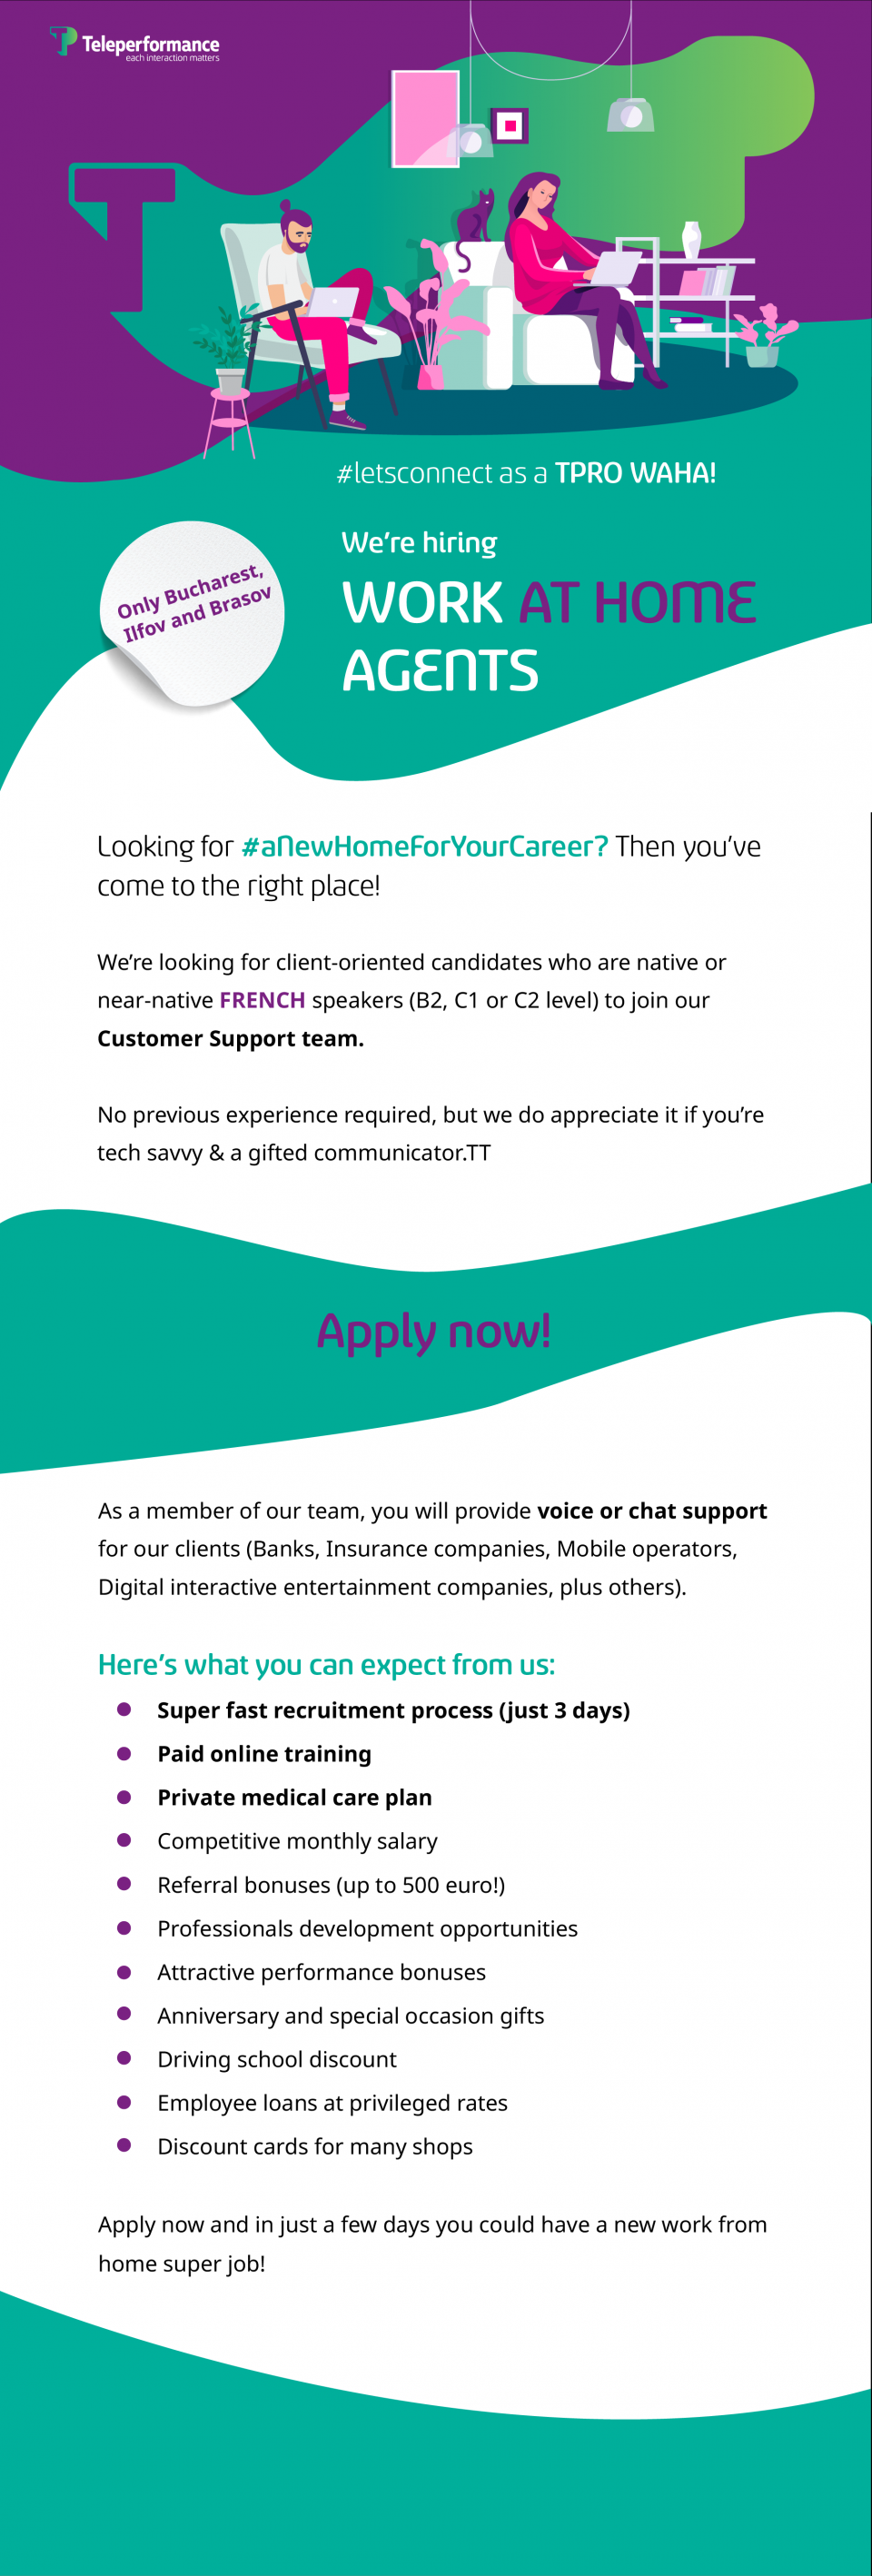 #letsconnect as a TPRO WAHA!